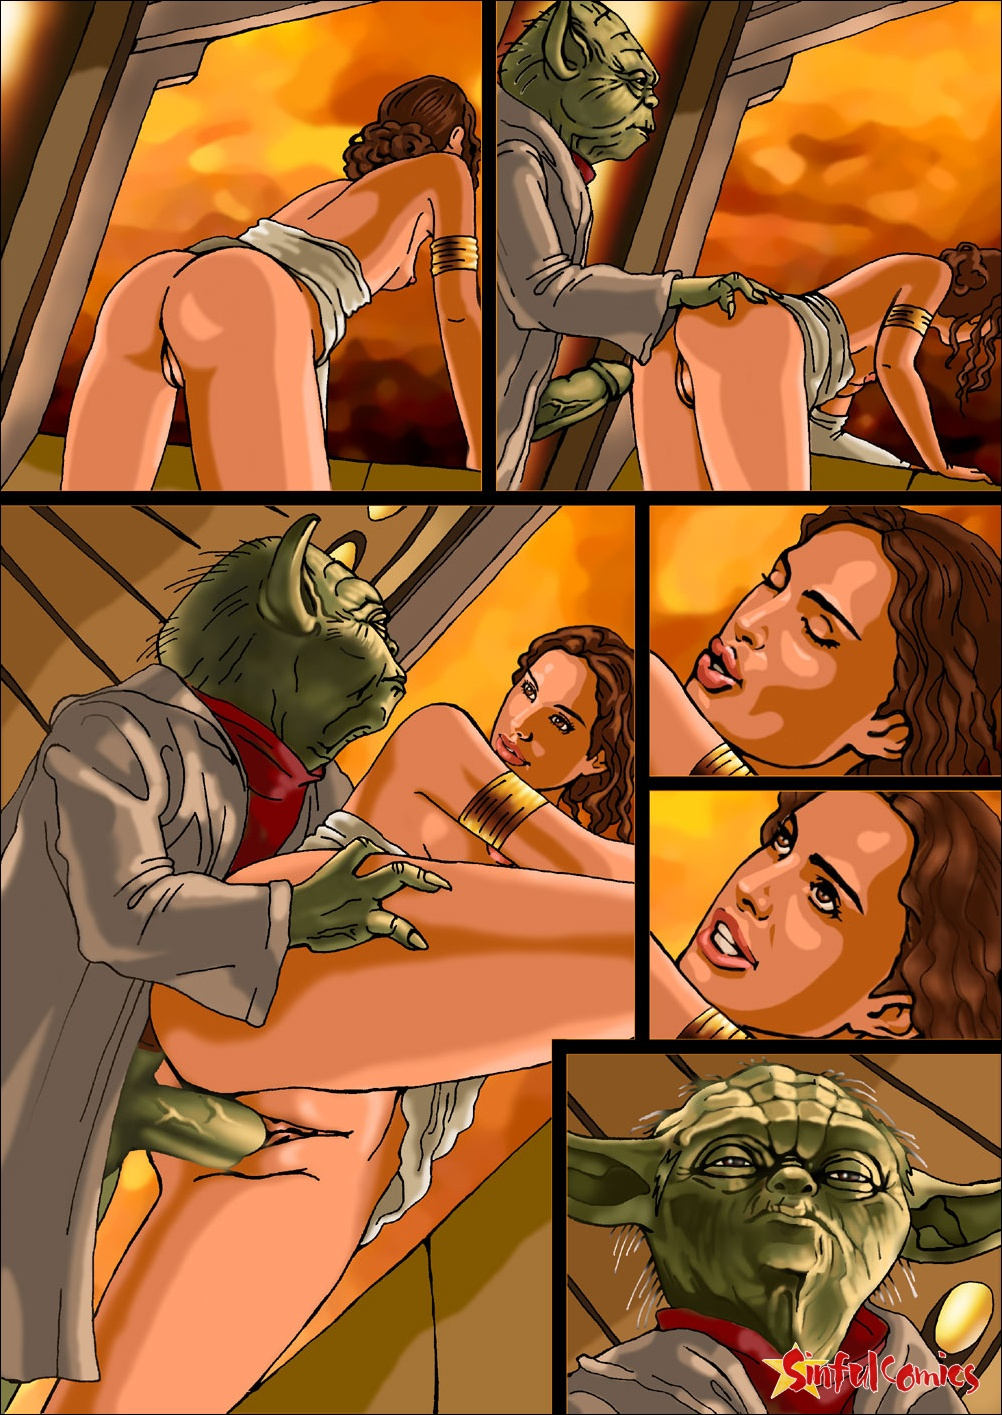 Sex star wars movie pictures hentai smut image